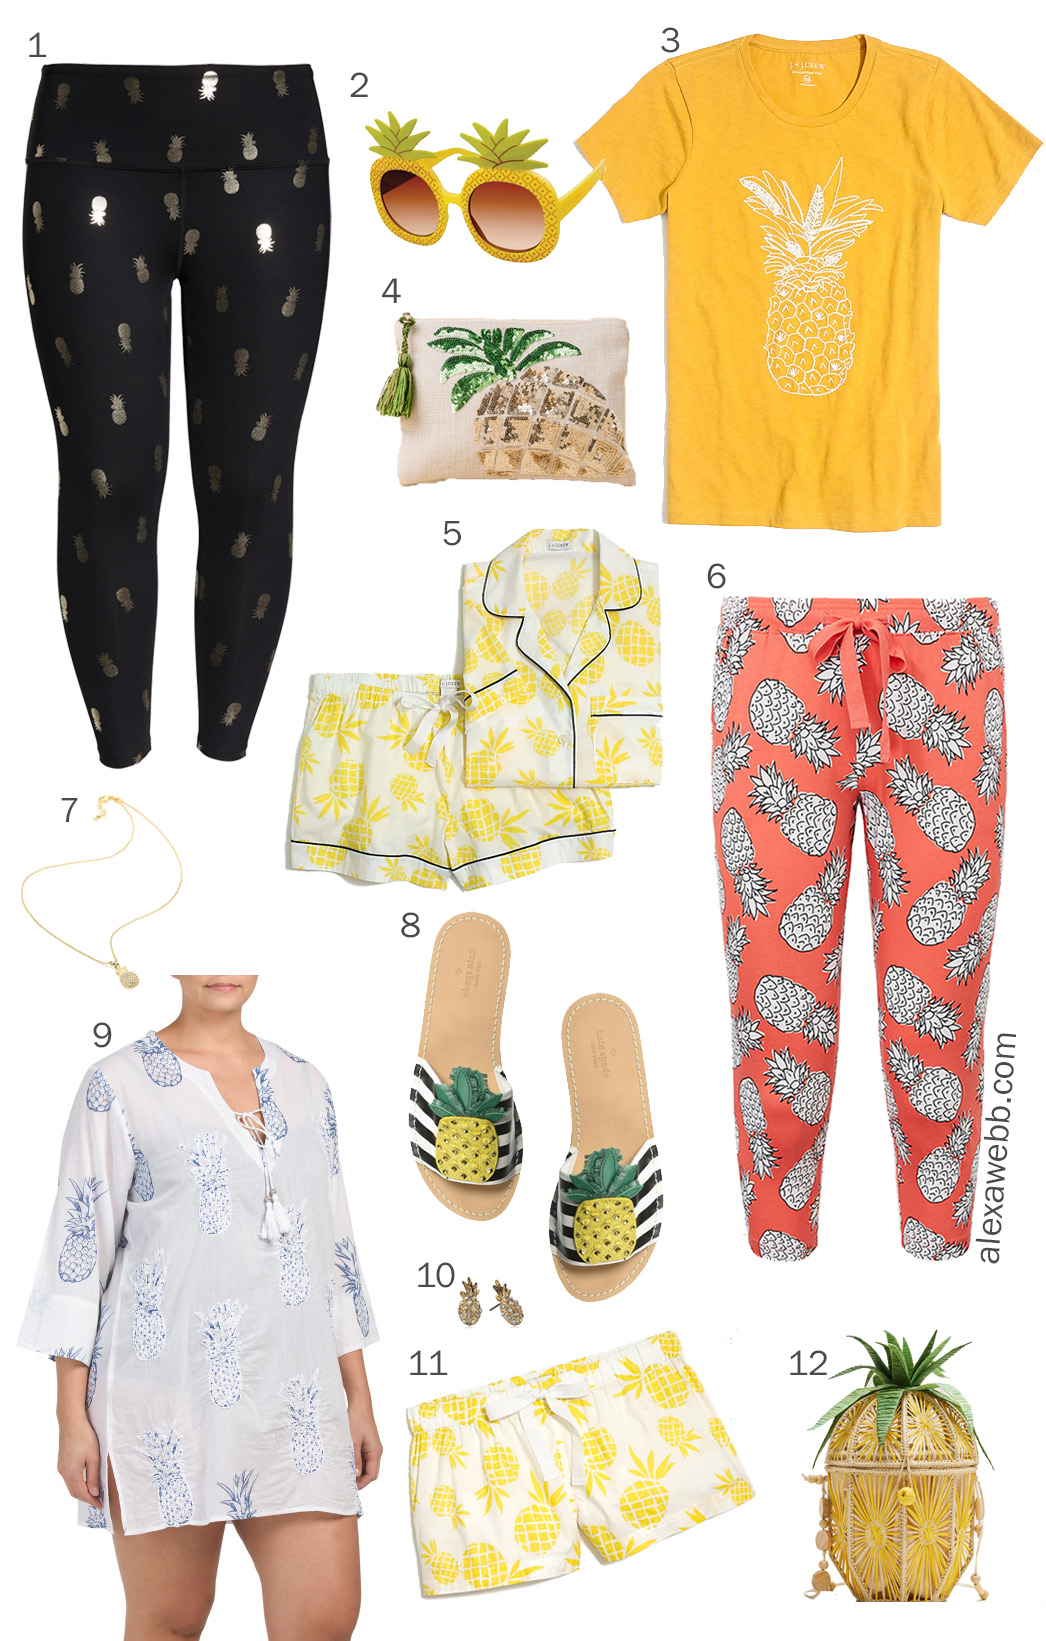 Plus Size Pineapple Trend - Pineapple Leggings and Pajamas - alexawebb.com #plussize #alexawebb